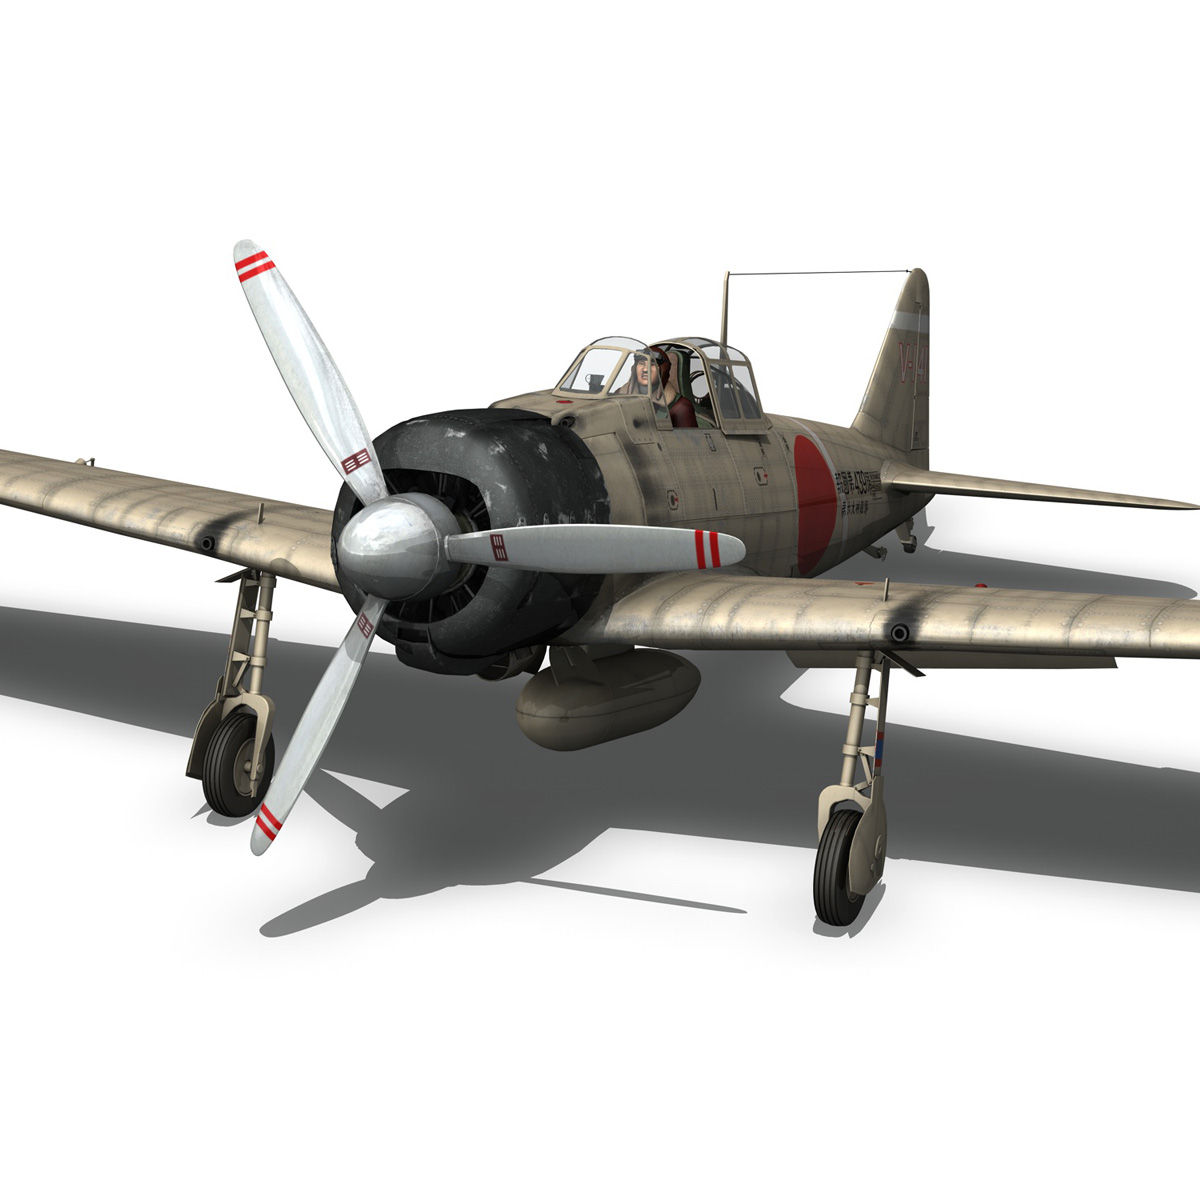 mitsubishi a6m2 zero – tainan air group 3d model fbx lwo obj 272722